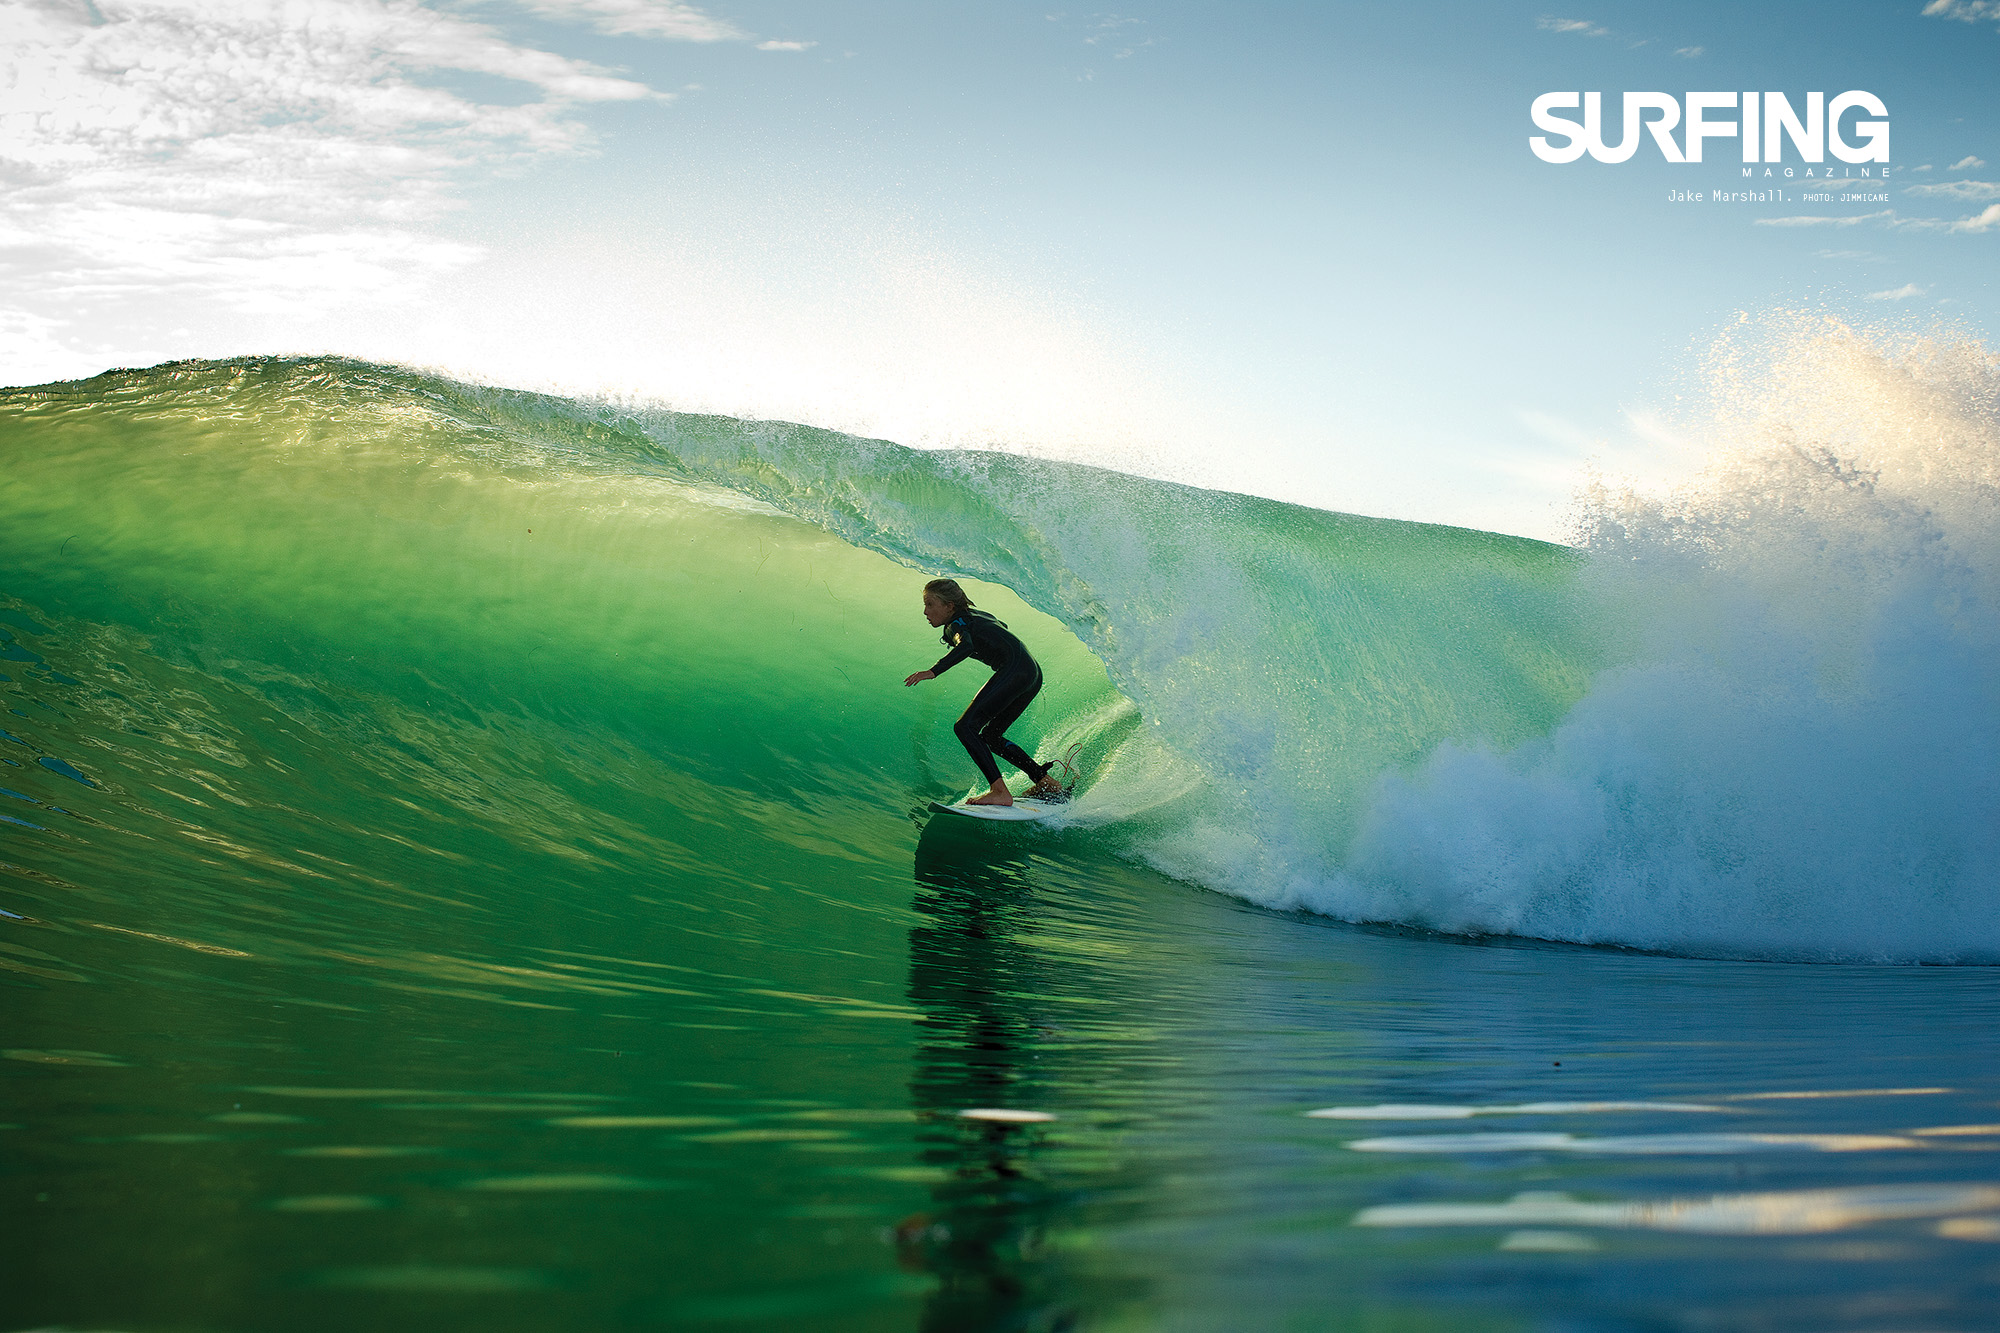 Beautiful Surfing Wallpaper | BsnSCB.com